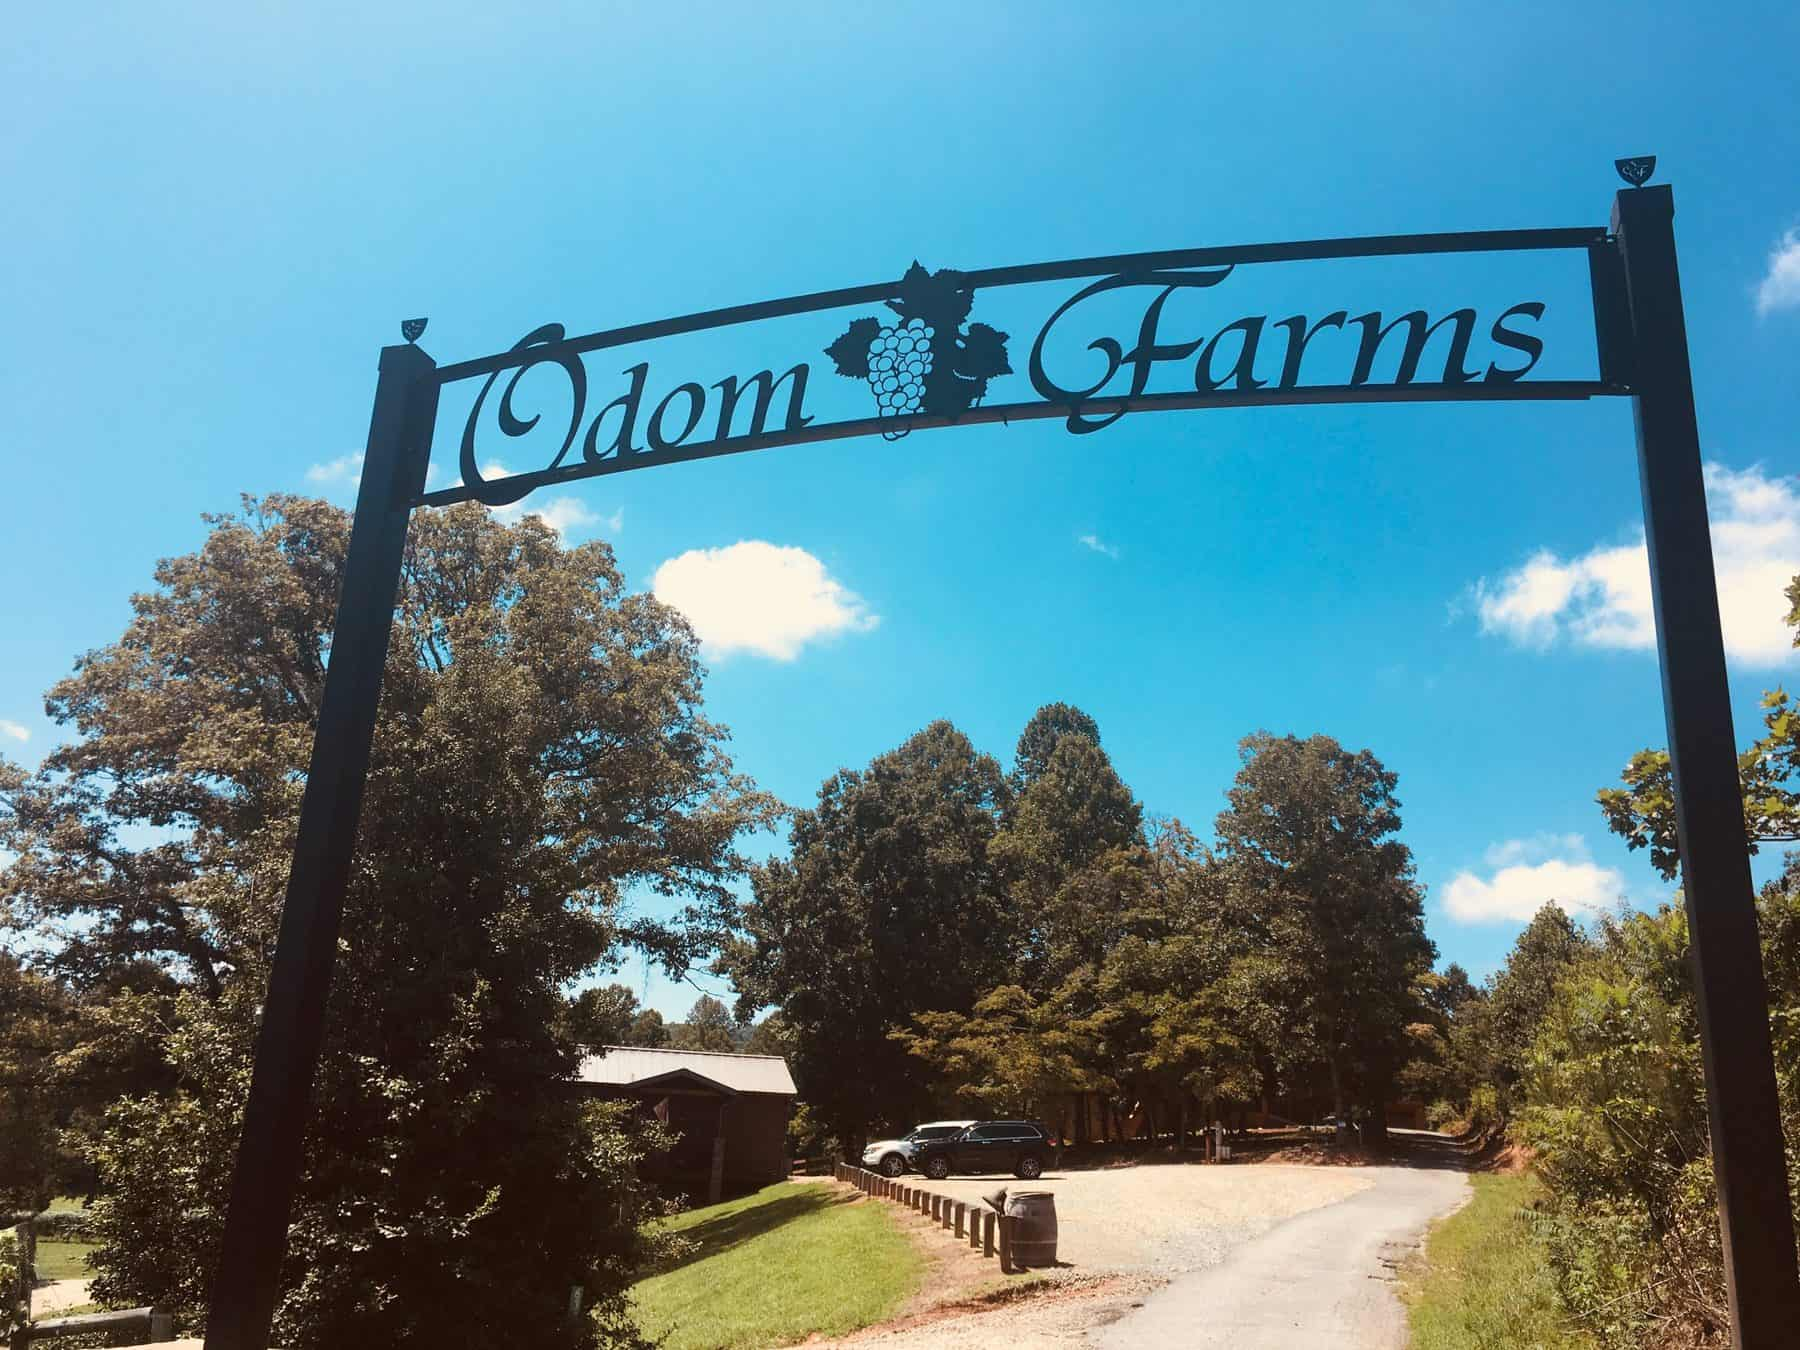 yonah mountain, winery, north georgia, helen